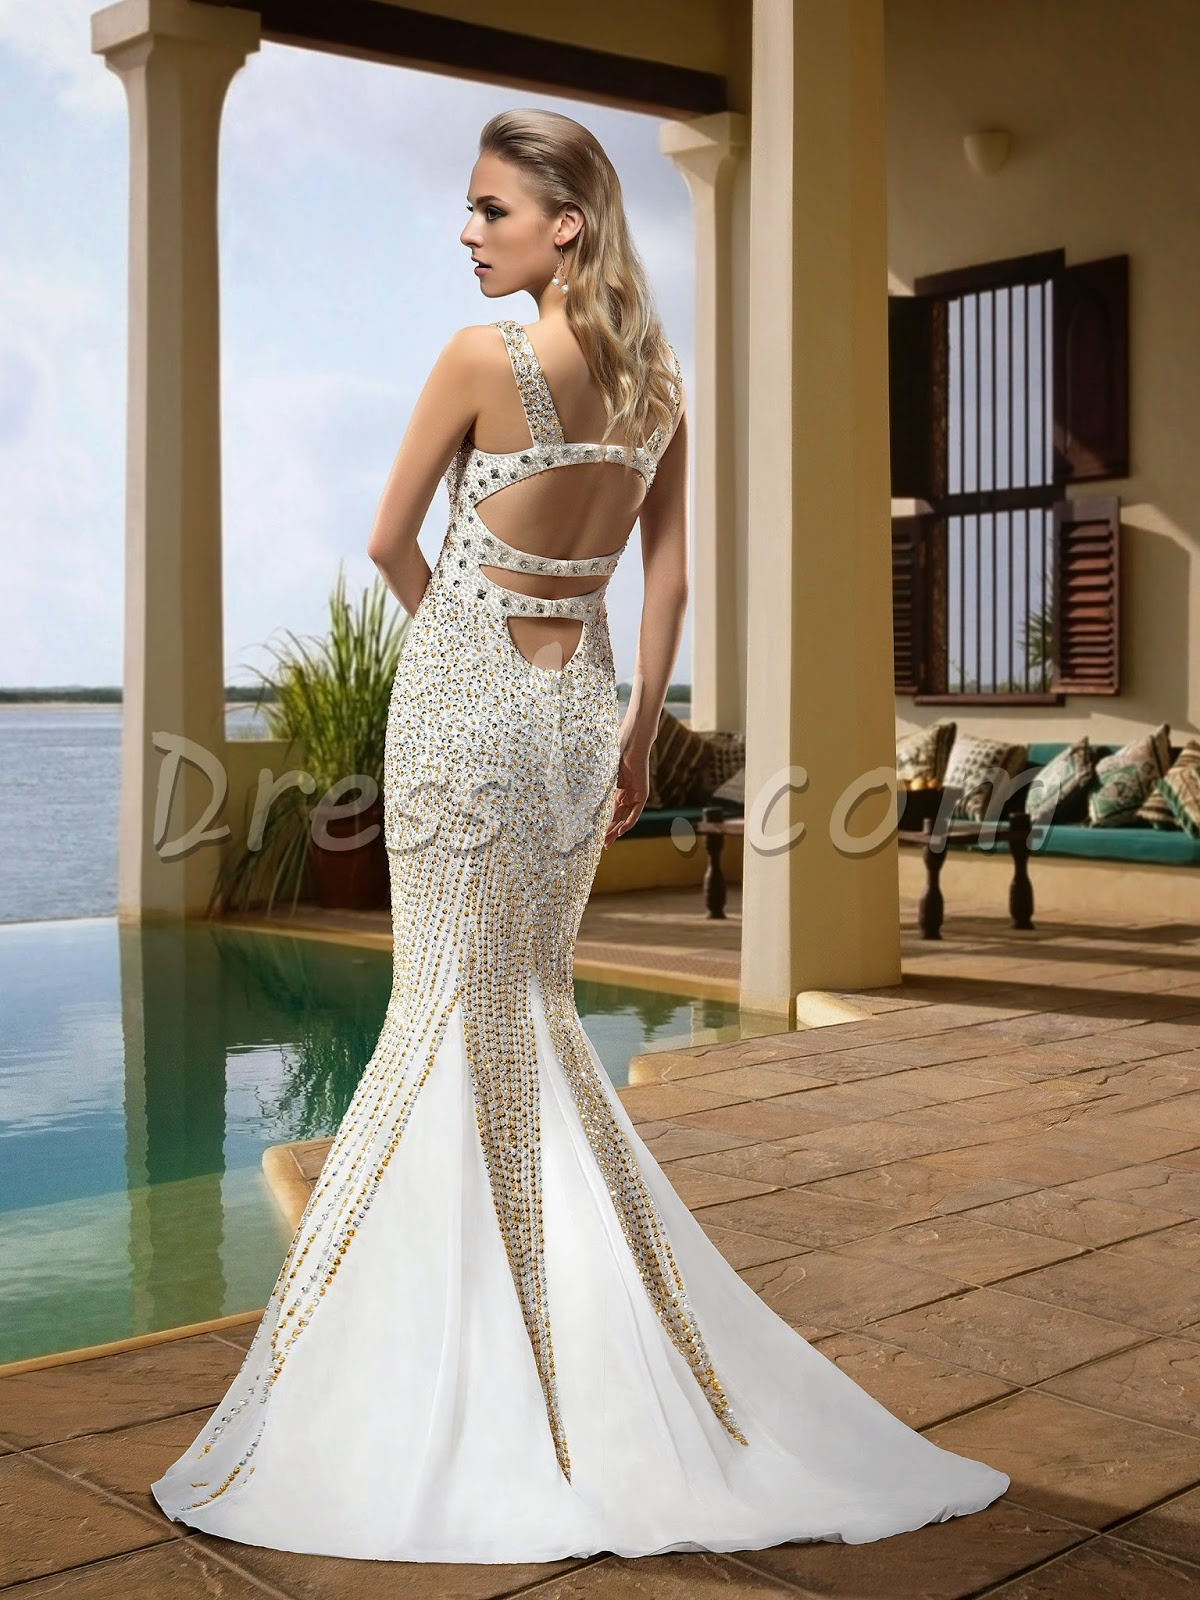 sexy mermaid wedding dresses from sexy mermaid wedding dresses Sexy Mermaid Wedding Dresses at DressV Sexy Mermaid Wedding Dresses at DressV